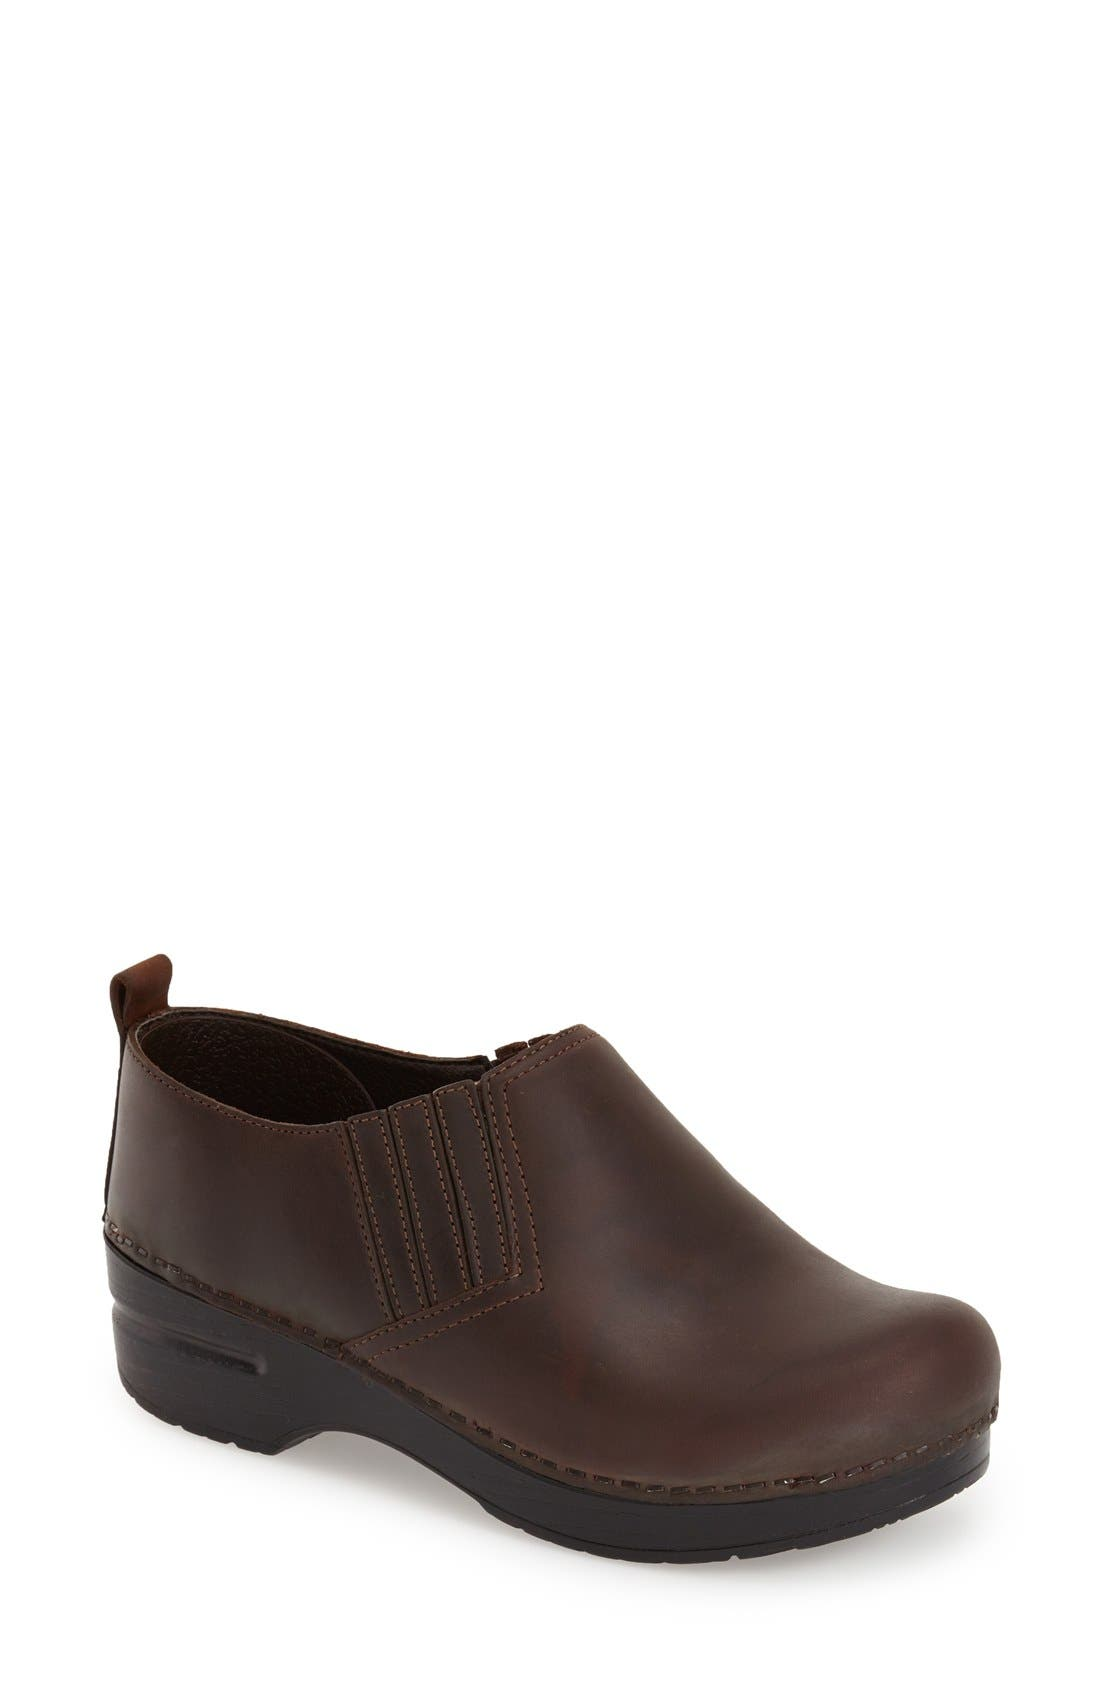 'Piet' Clog,                             Main thumbnail 1, color,                             ANTIQUE BROWN OILED LEATHER